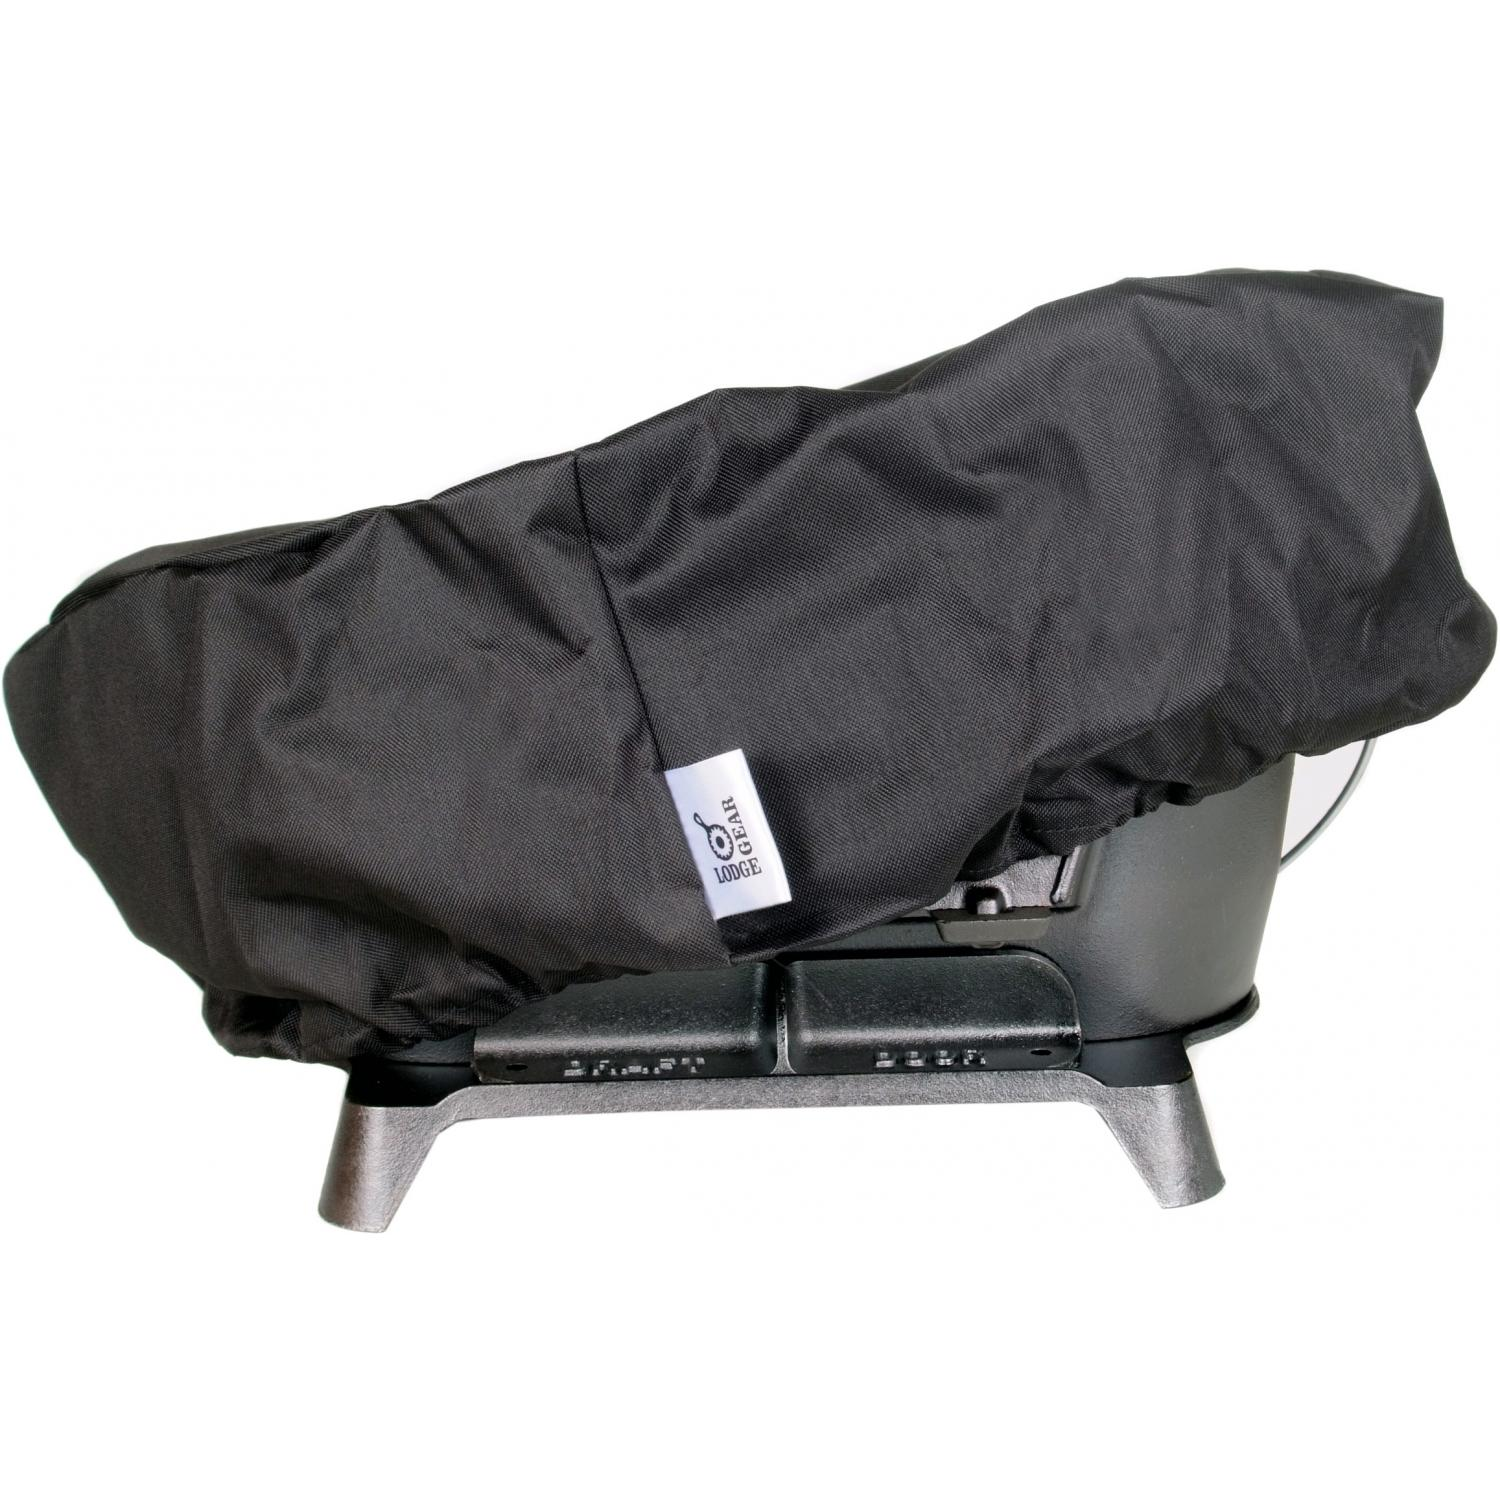 Lodge Sportsman Grill Cover - A1-410